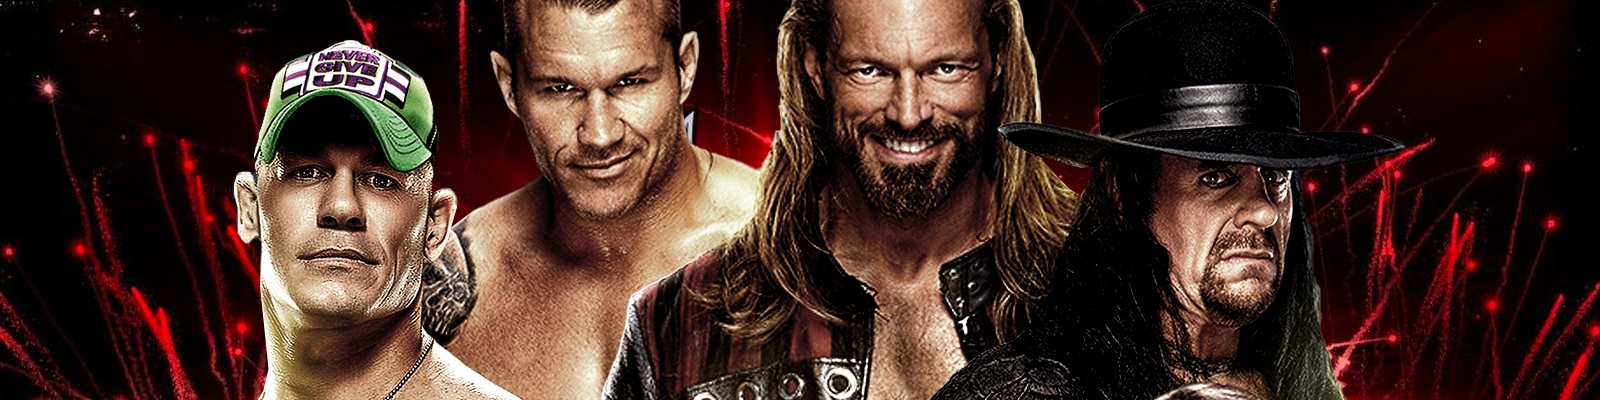 WWE WrestleMania 36: Complete Card, Analysis, Predictions, And Probably Spoilers